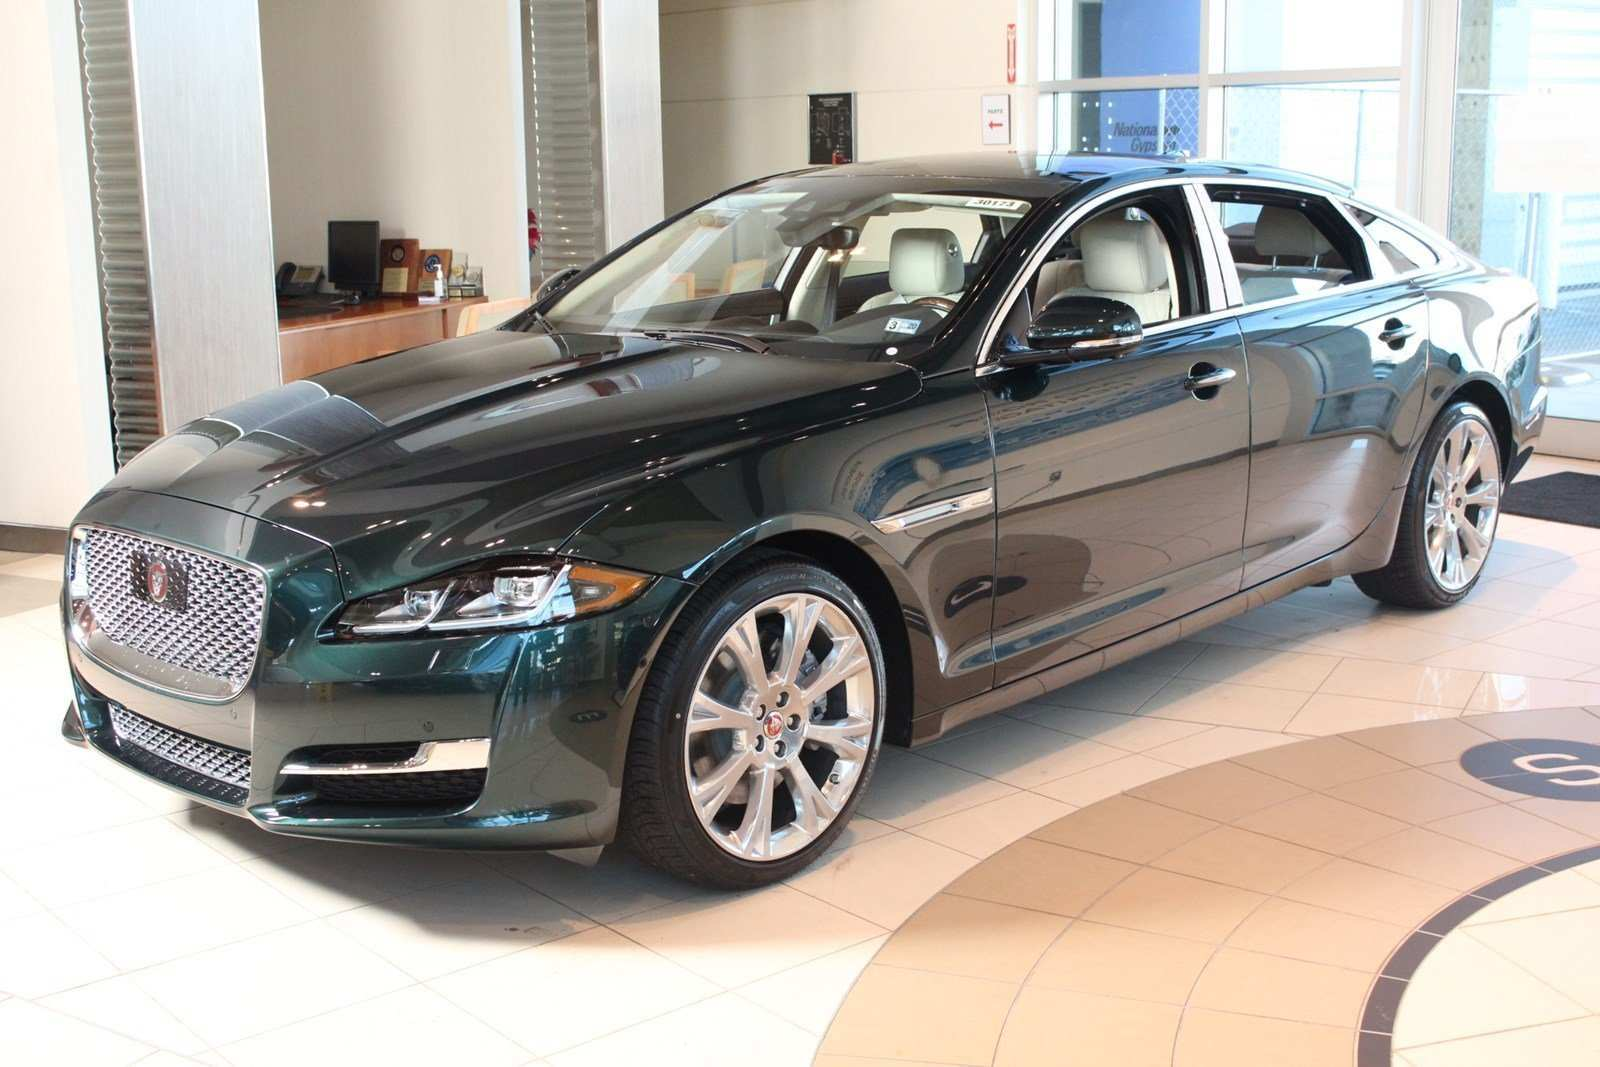 28 All New 2019 Jaguar Xj Price Price Design And Review